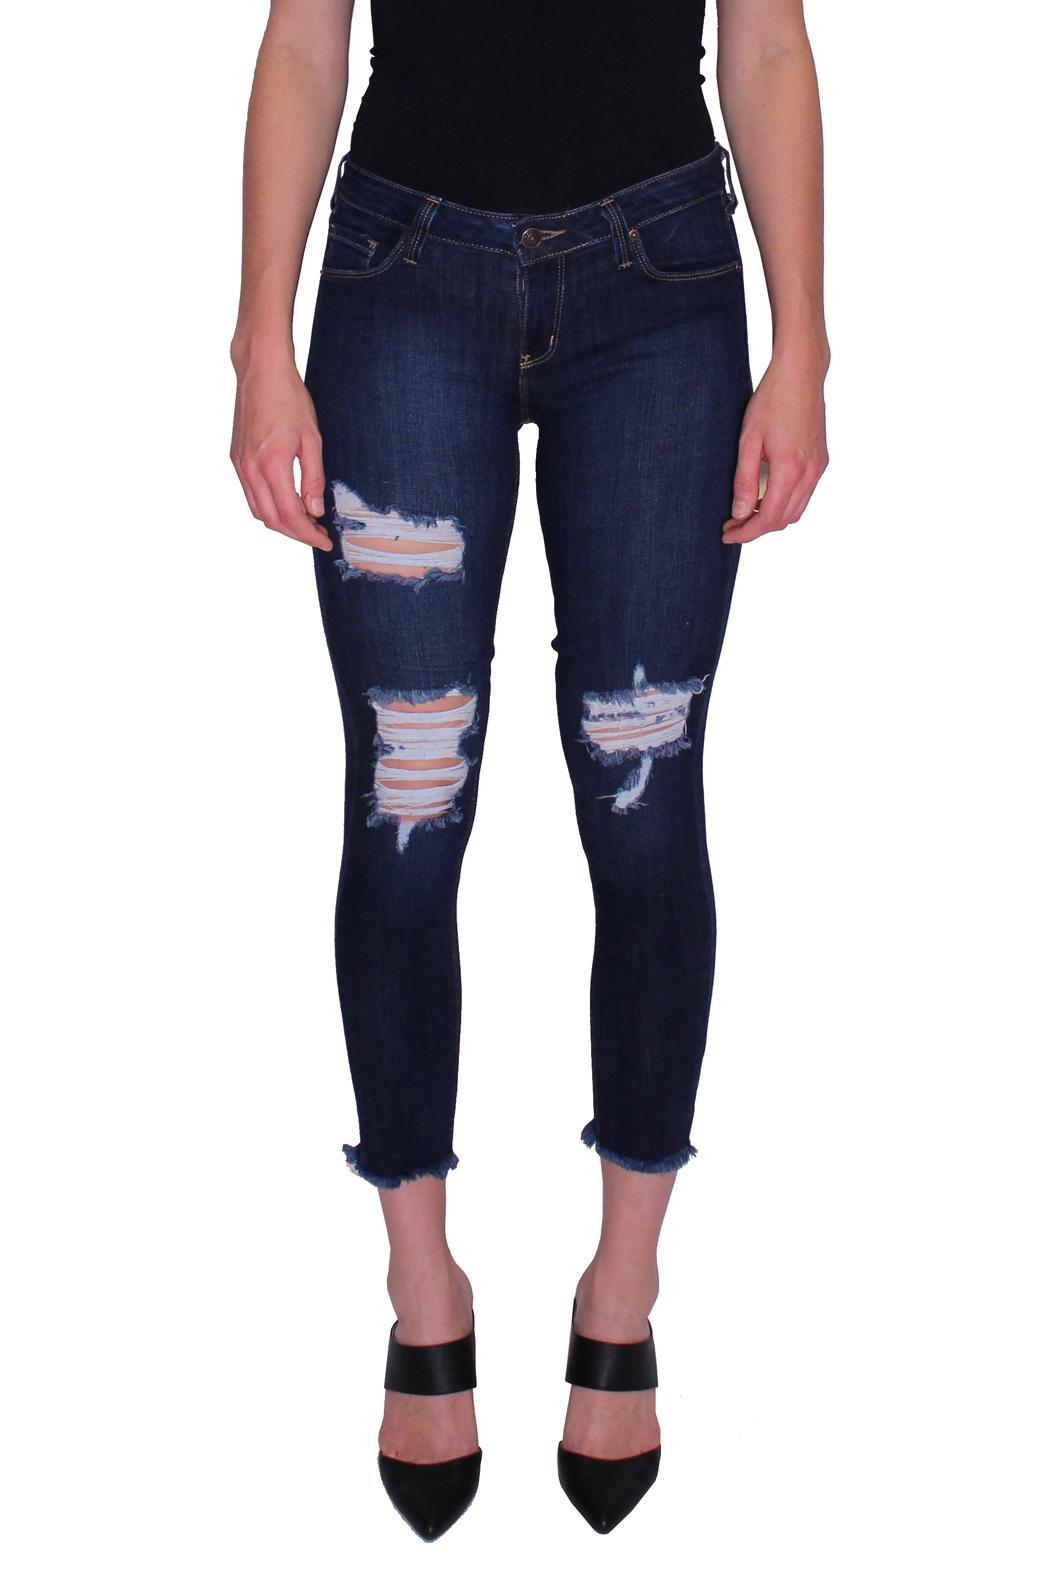 just black Distressed Skinny Jeans from Long Island by InMotion ...